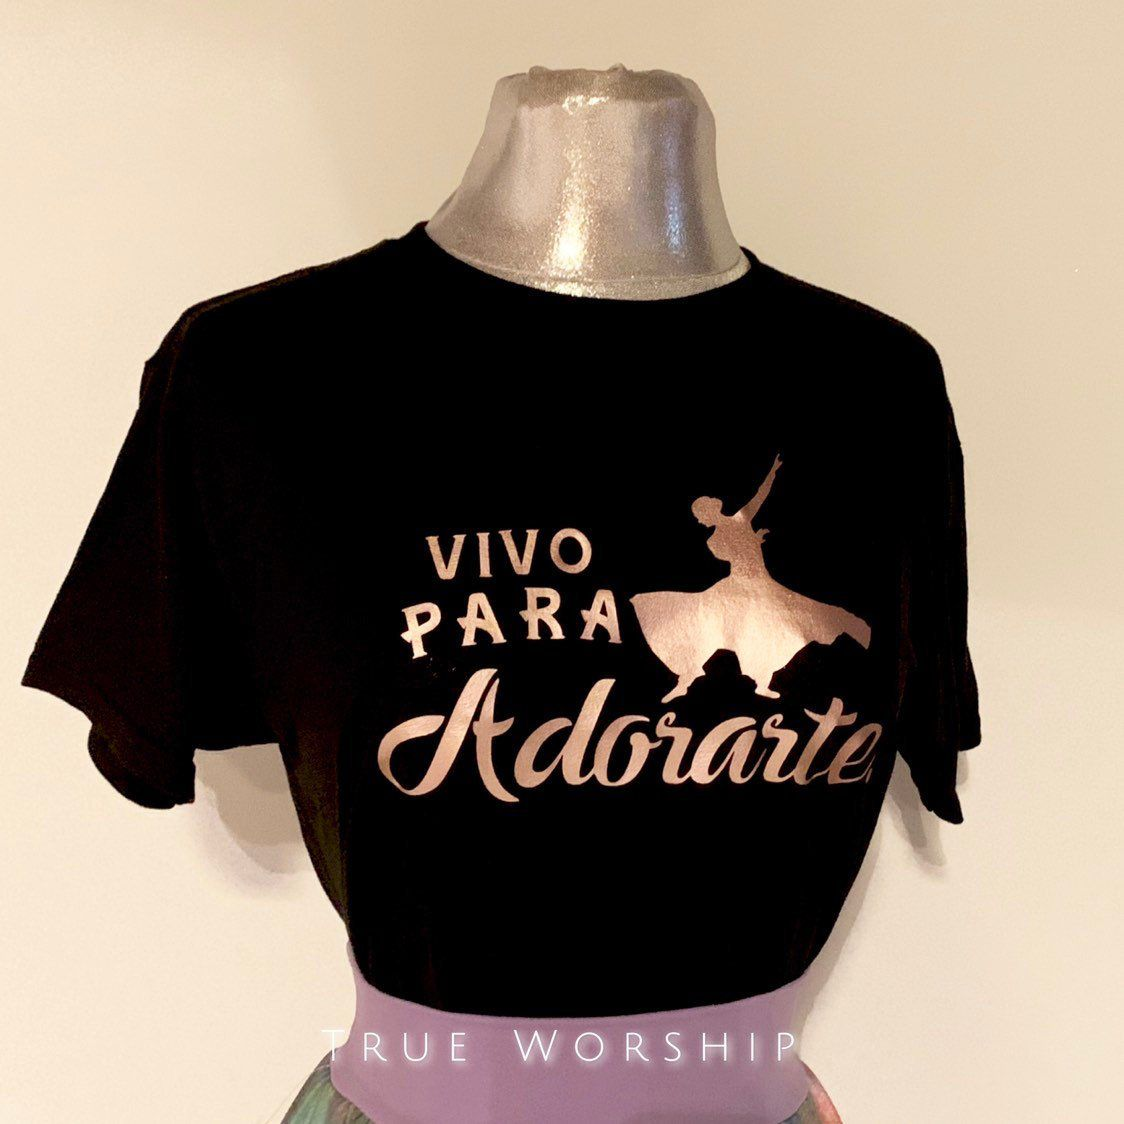 Excited To Share This Item From My Etsy Shop Tshirt Para Ensayo Tshirt Vivo Para Adorarte Camisascri Praise Dance Wear Praise Dance Outfits Dance Outfits